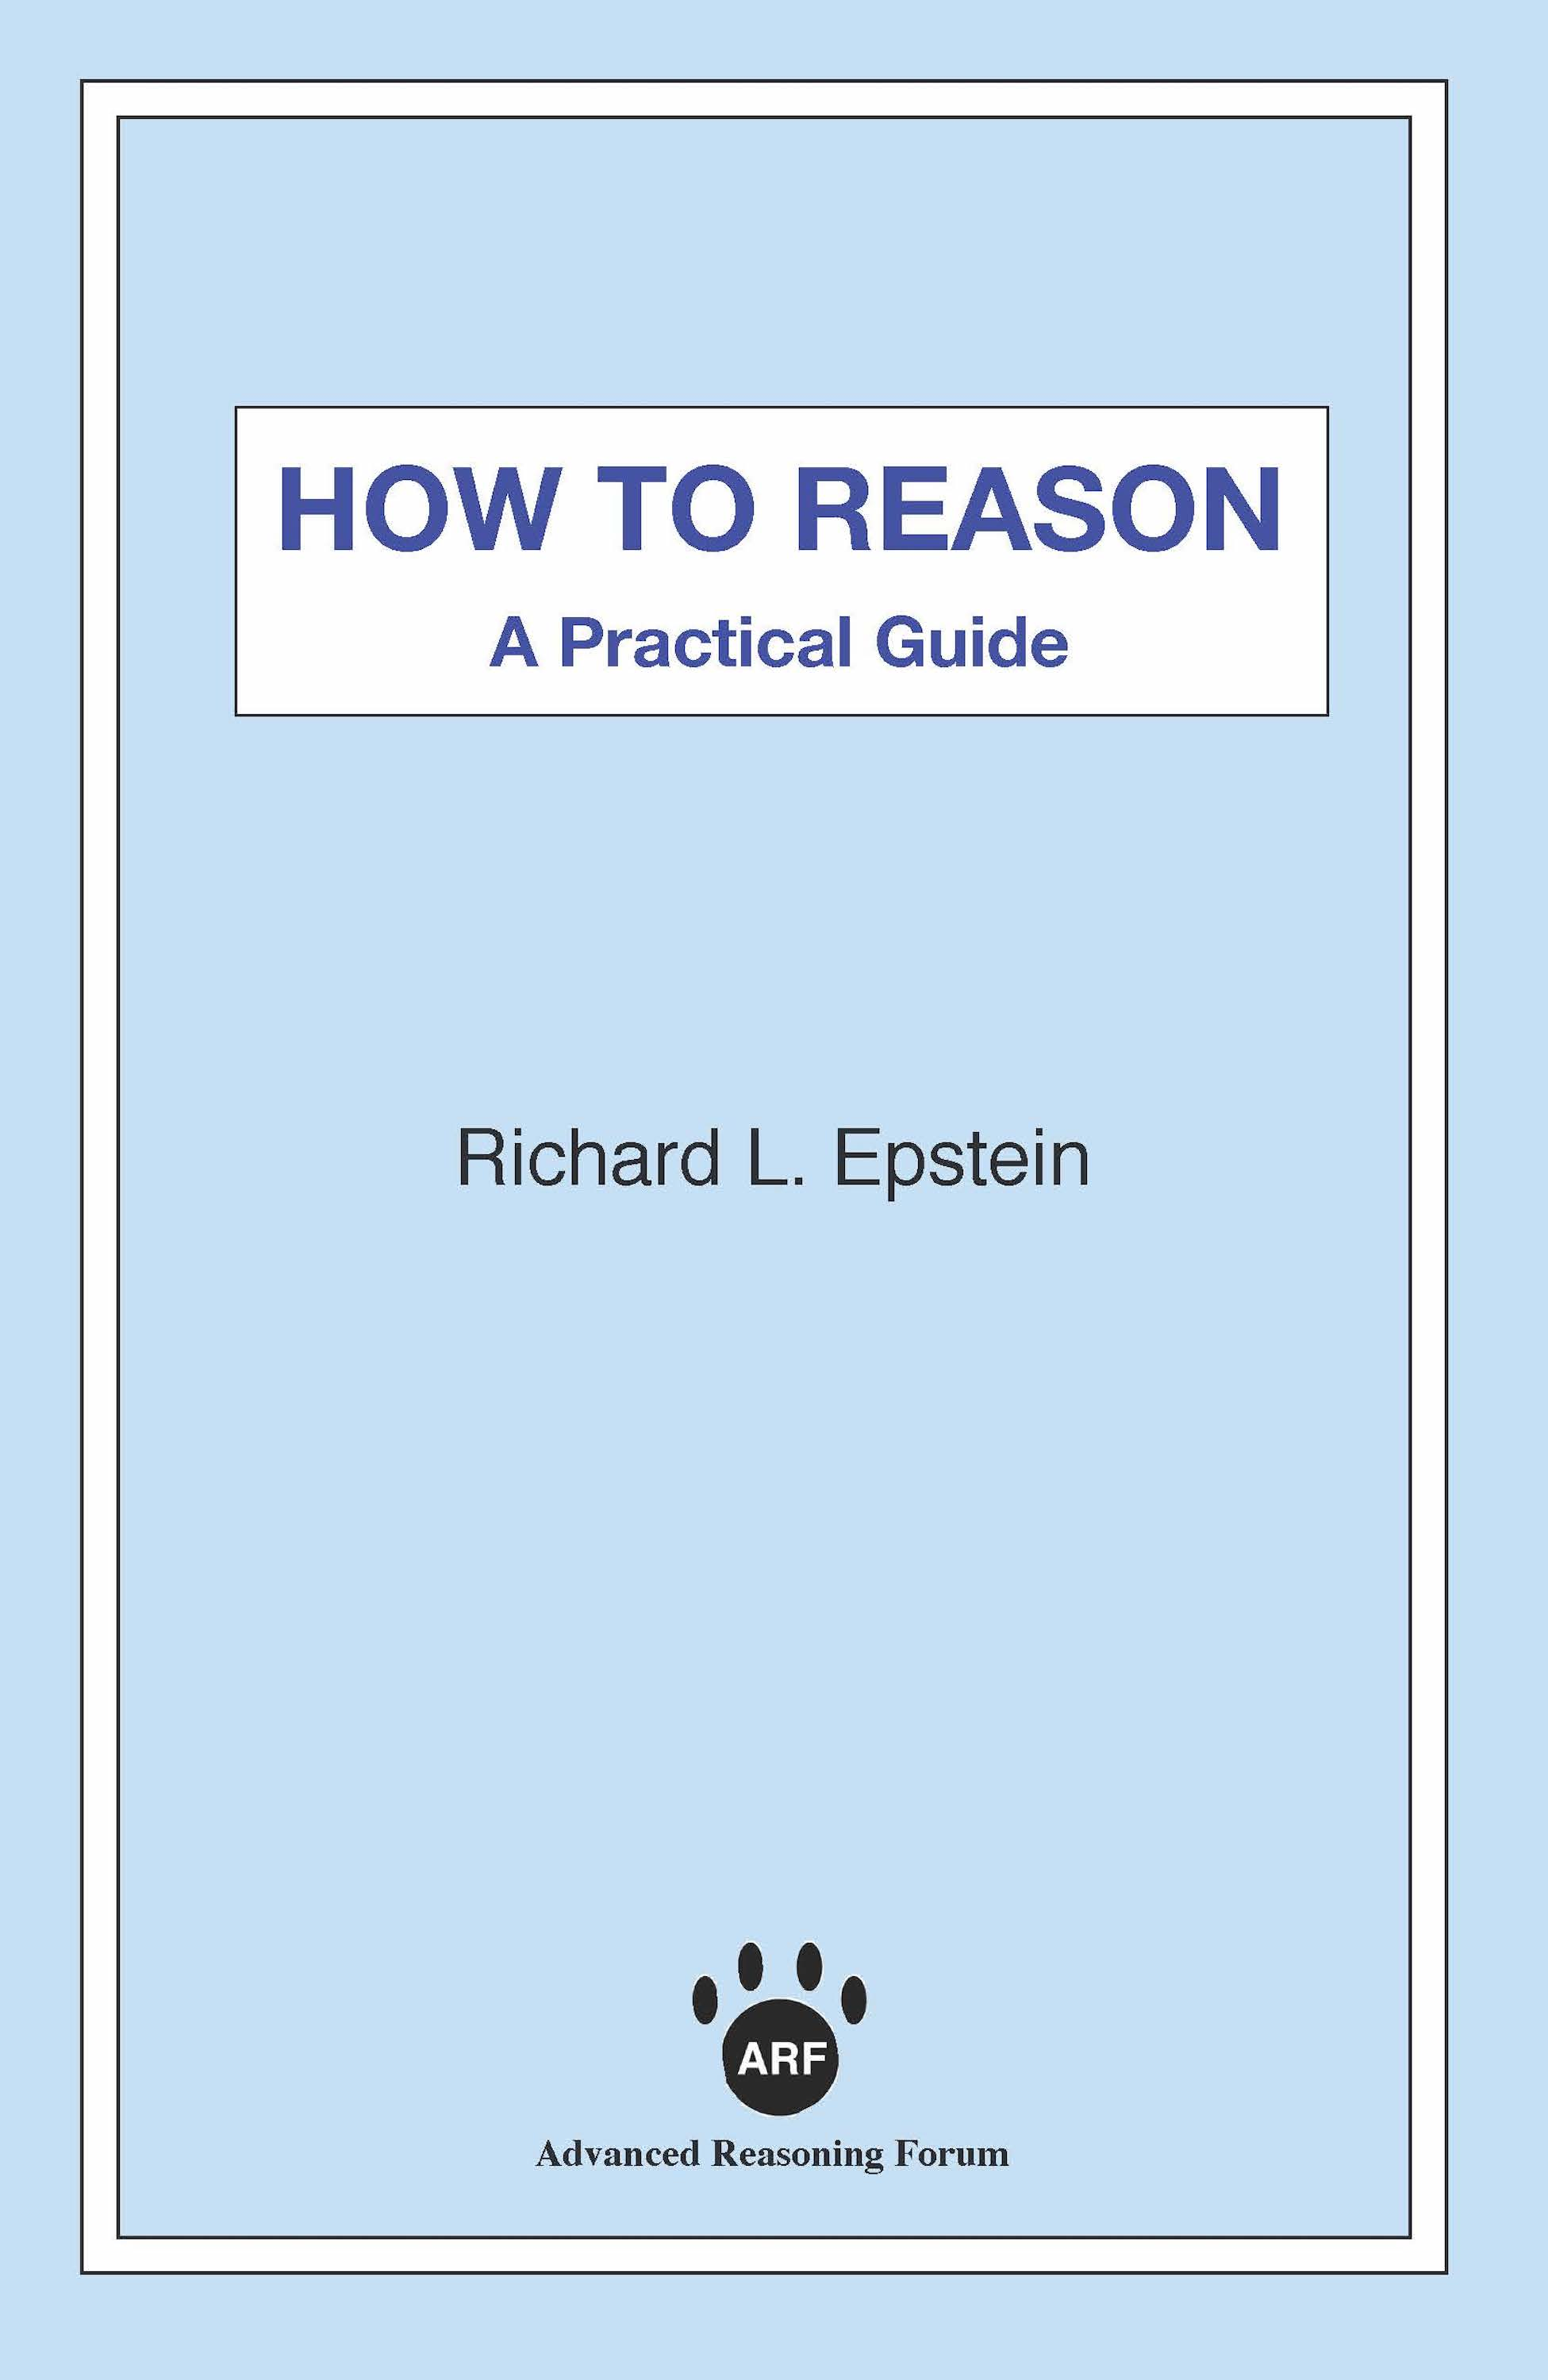 Richard L. Epstein How to Reason richard l epstein the pocket guide to critical thinking fifth edition